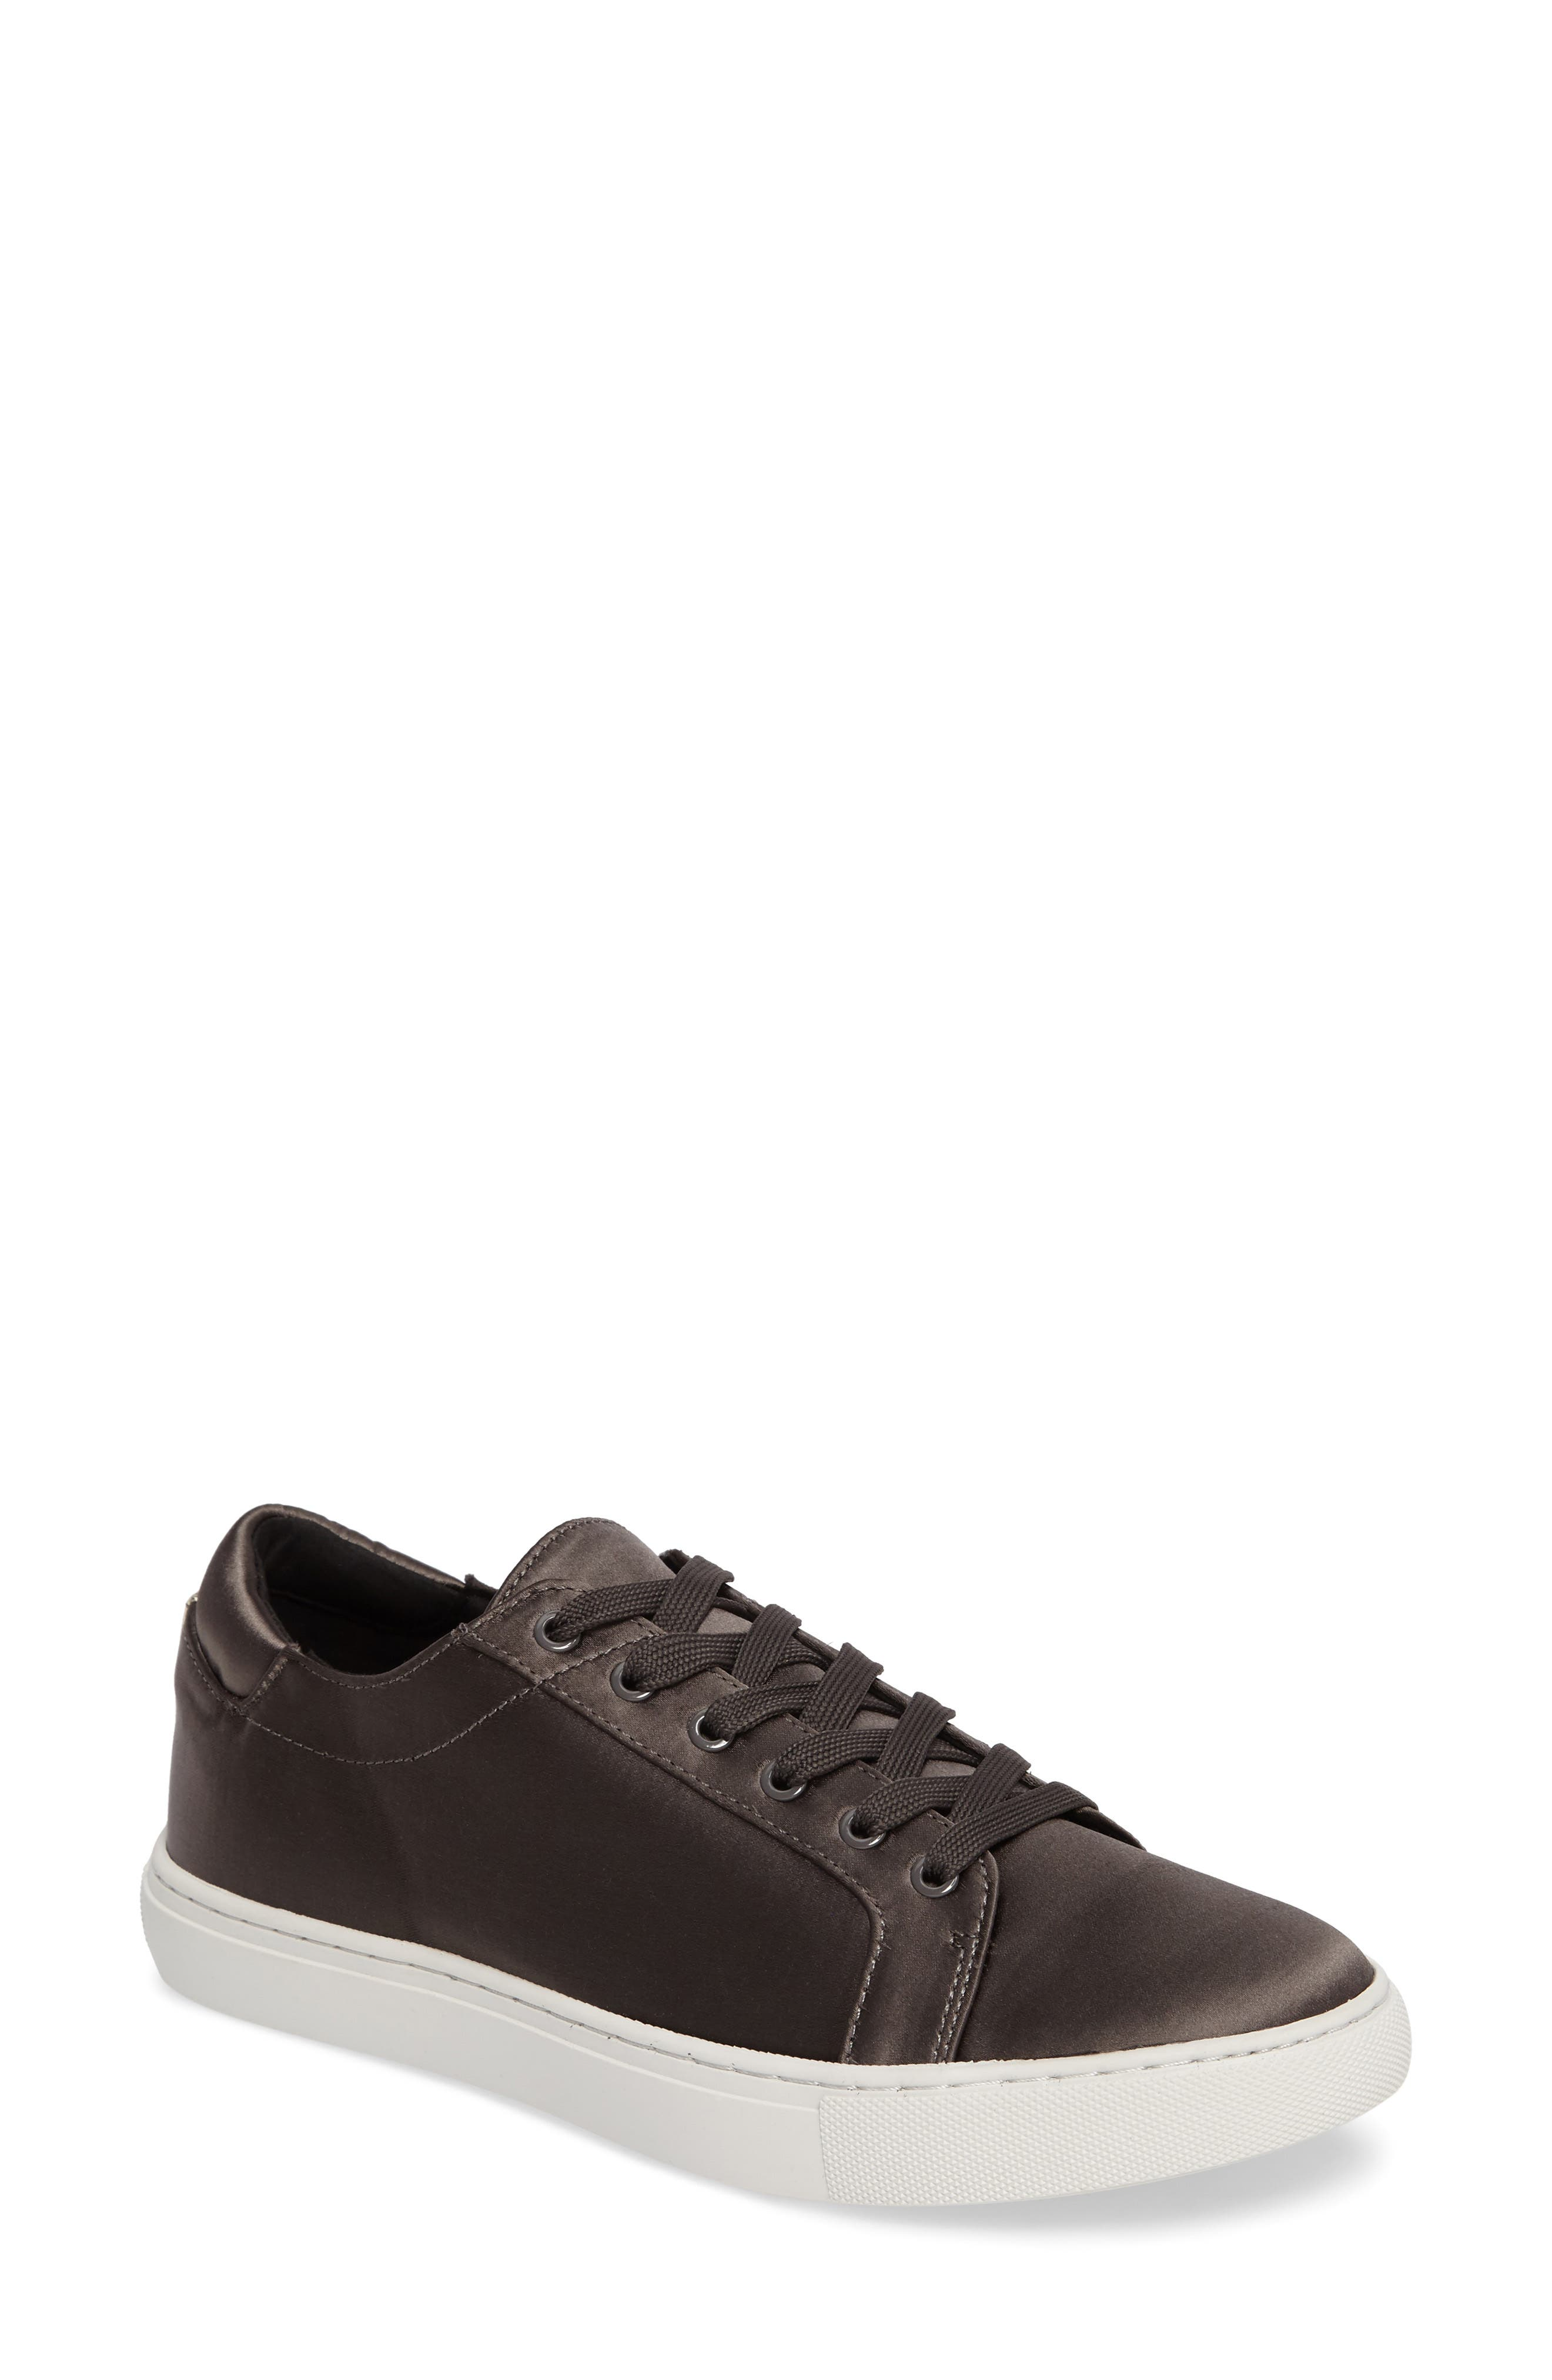 Main Image - Kenneth Cole New York 'Kam' Sneaker (Women)